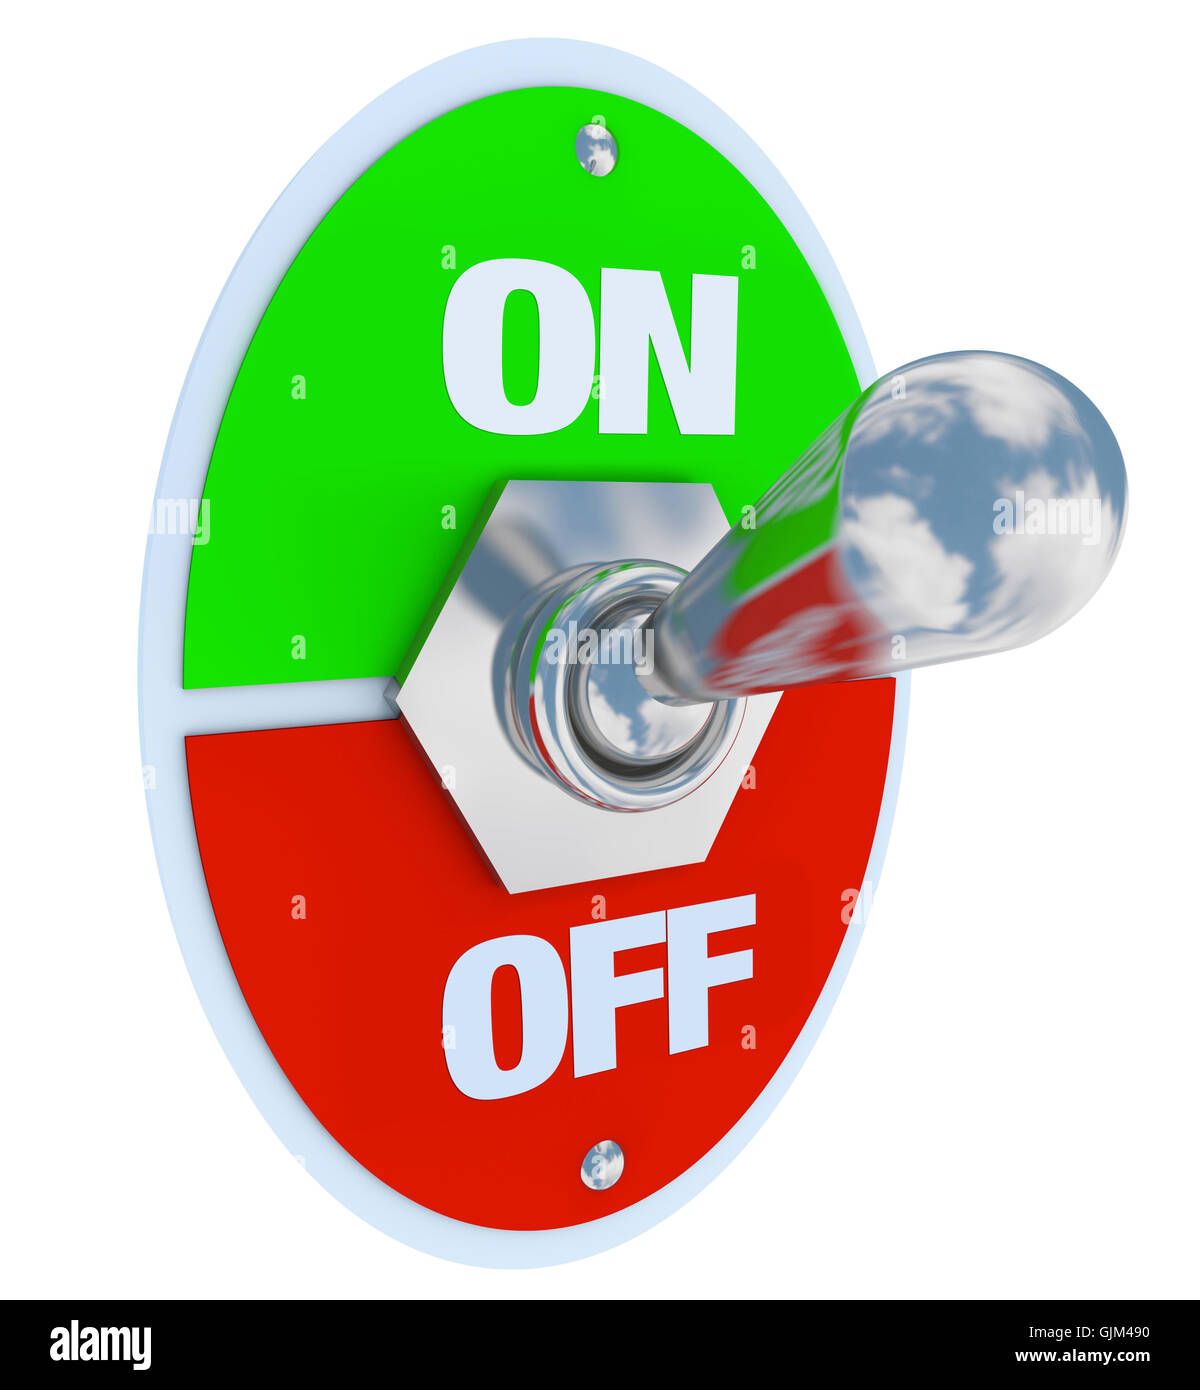 On and Off - Toggle Switch - Stock Image